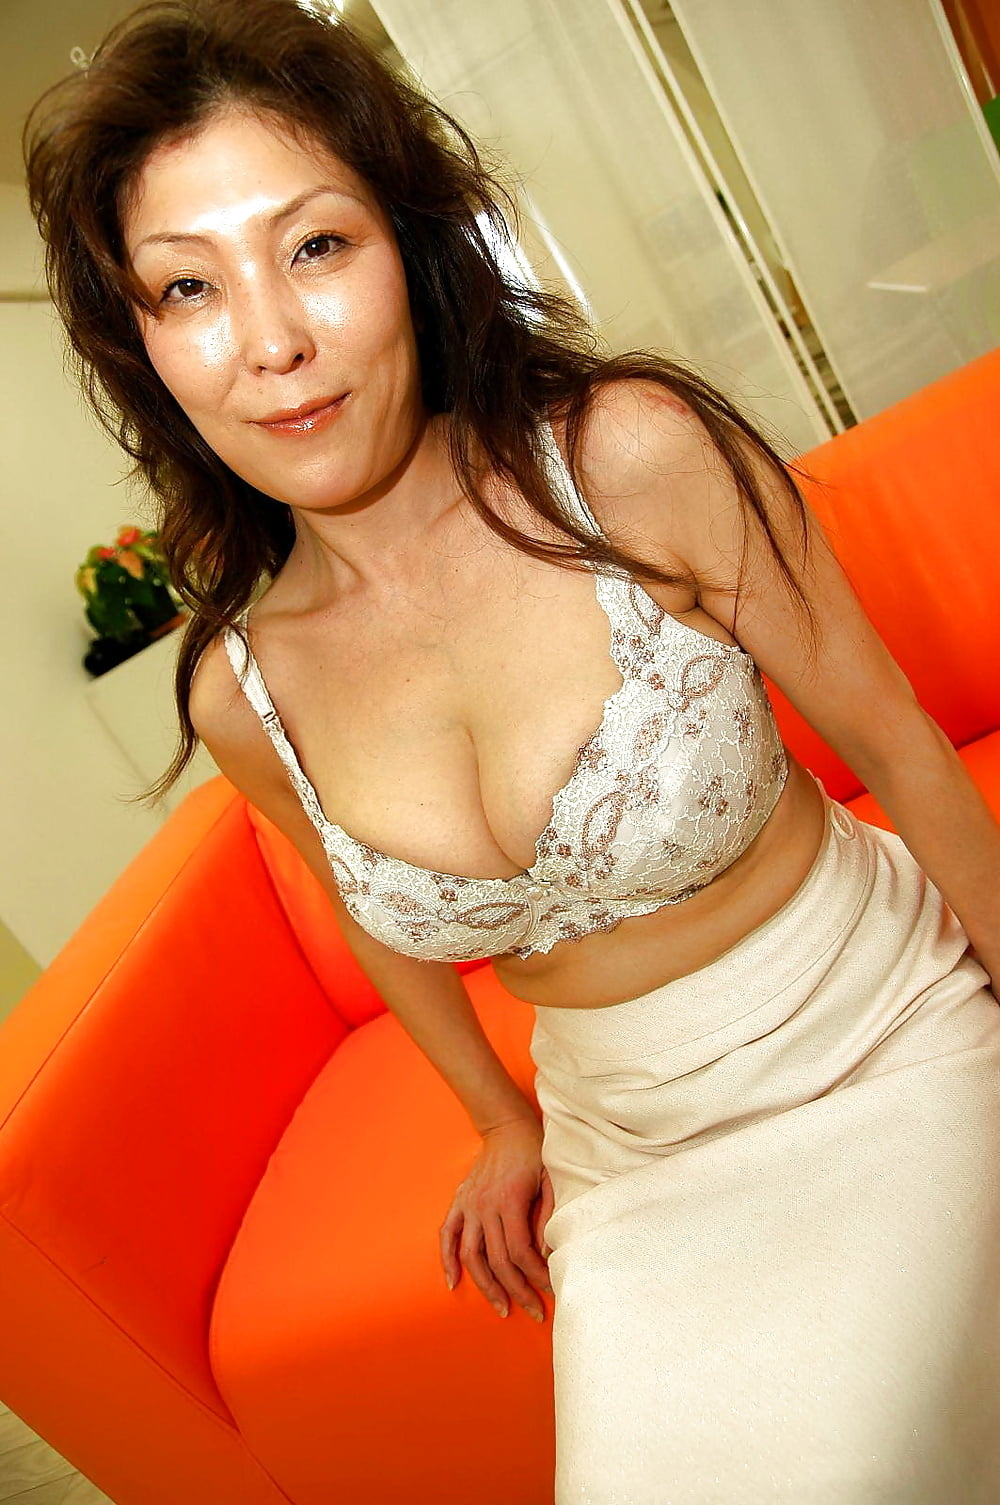 Mature vietnamese sex pictures #6